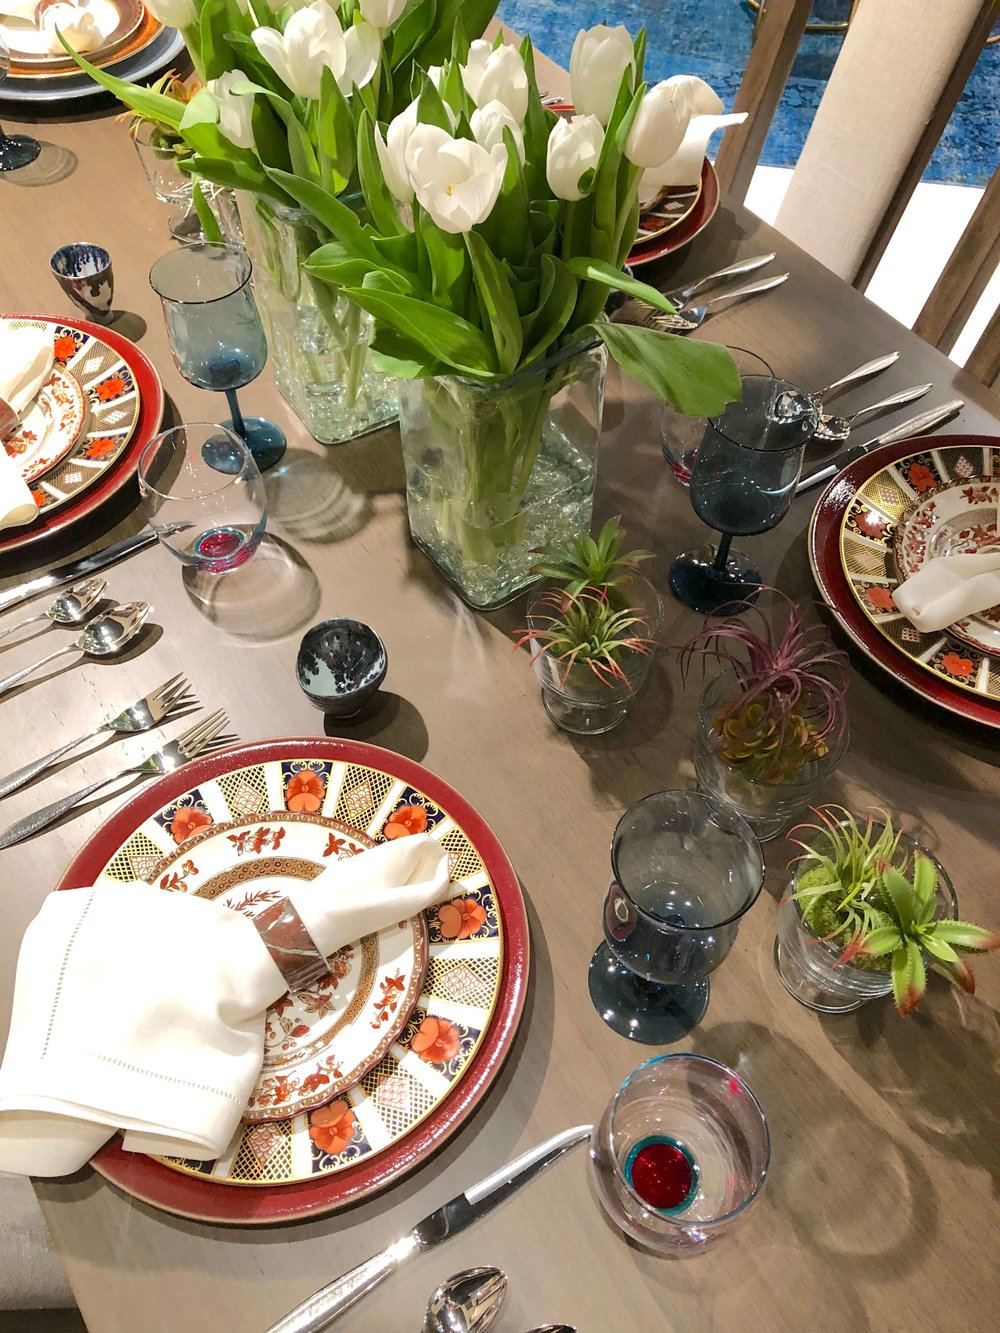 Tulips and succulents as the centerpiece in dining room designed by Jeanne Chung for the Alden Parkes showroom |#floralarrangement #fallflowers #centerpiece #falltabletop #tabletop #tablesetting